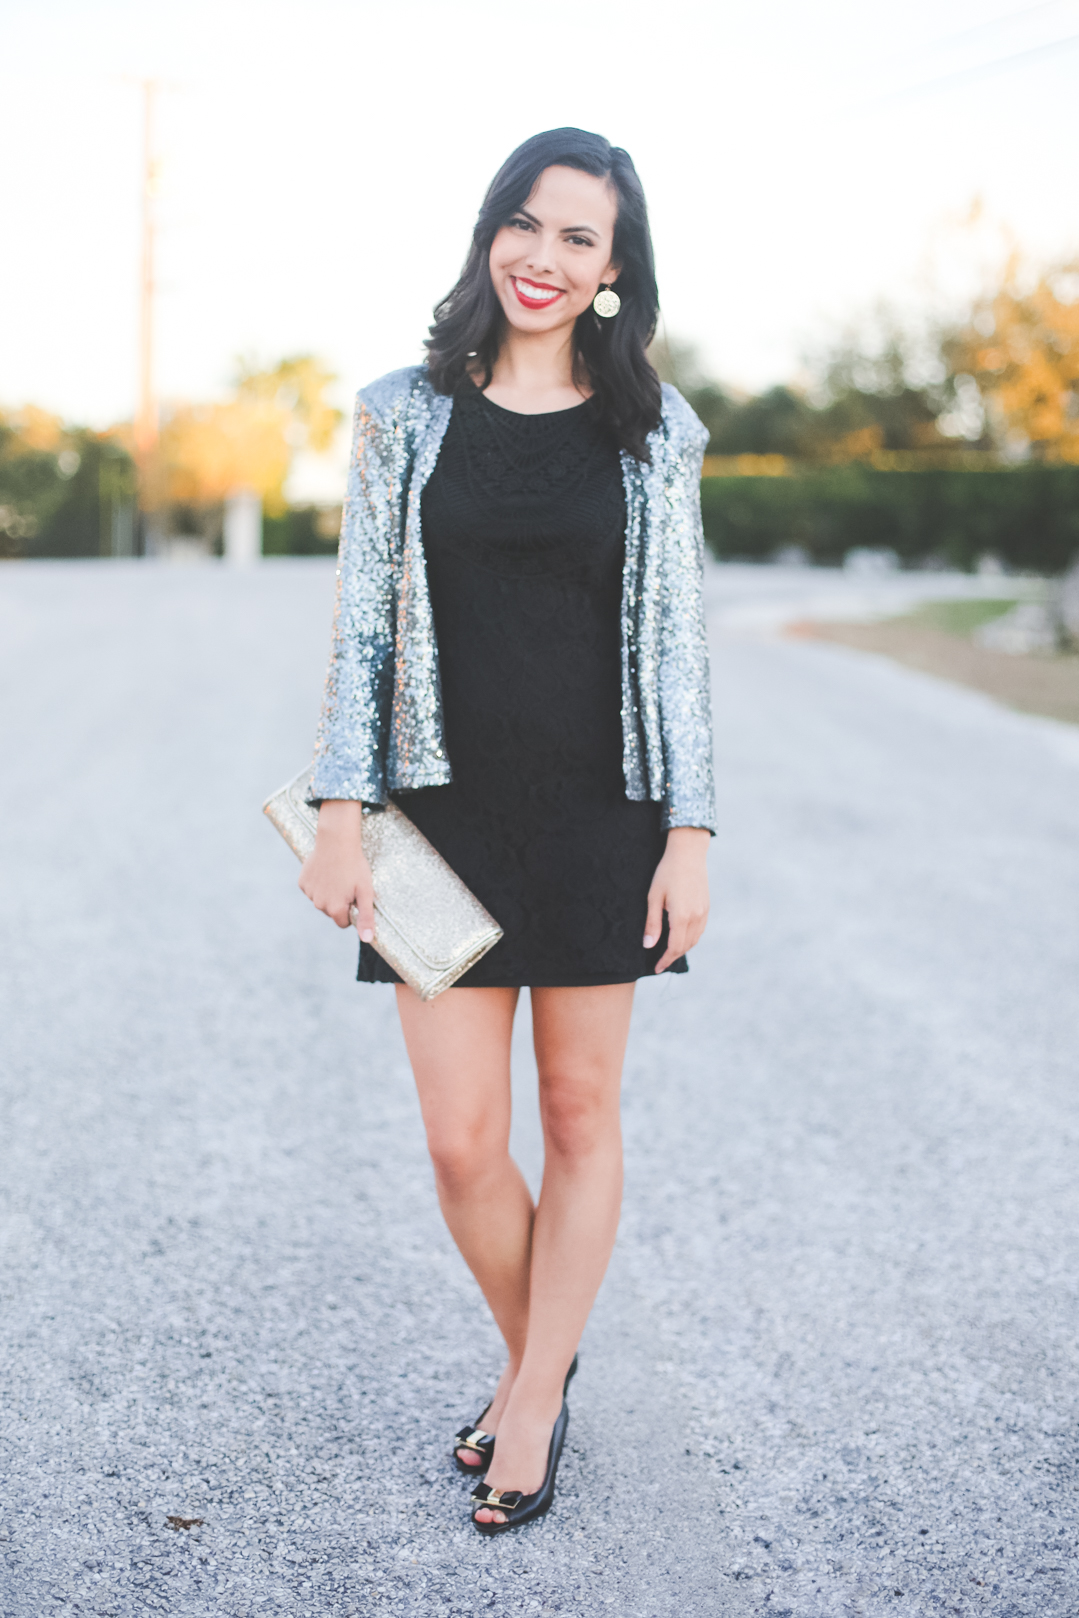 austin texas, austin fashion blog, austin fashion blogger, austin fashion, austin fashion blog, pinterest outfit, austin style, austin style blog, austin style blogger, austin style bloggers, style blogger, new years eve outfit, nye outfit, new years eve outfit ideas, new years outfit, sequin jacket